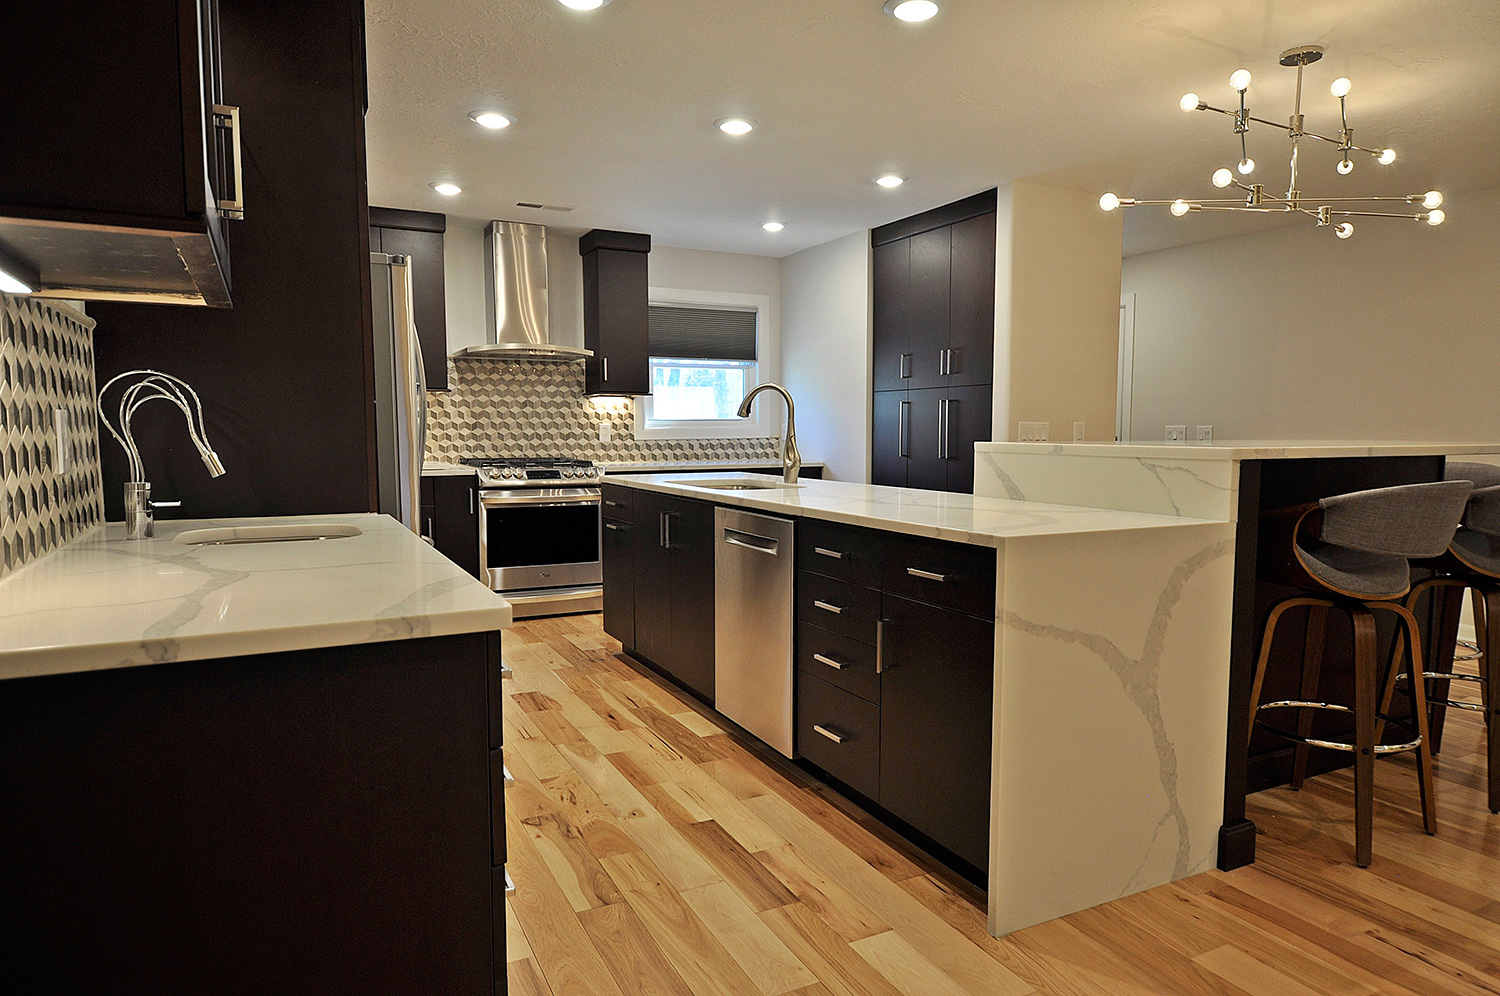 Modern kitchen 3